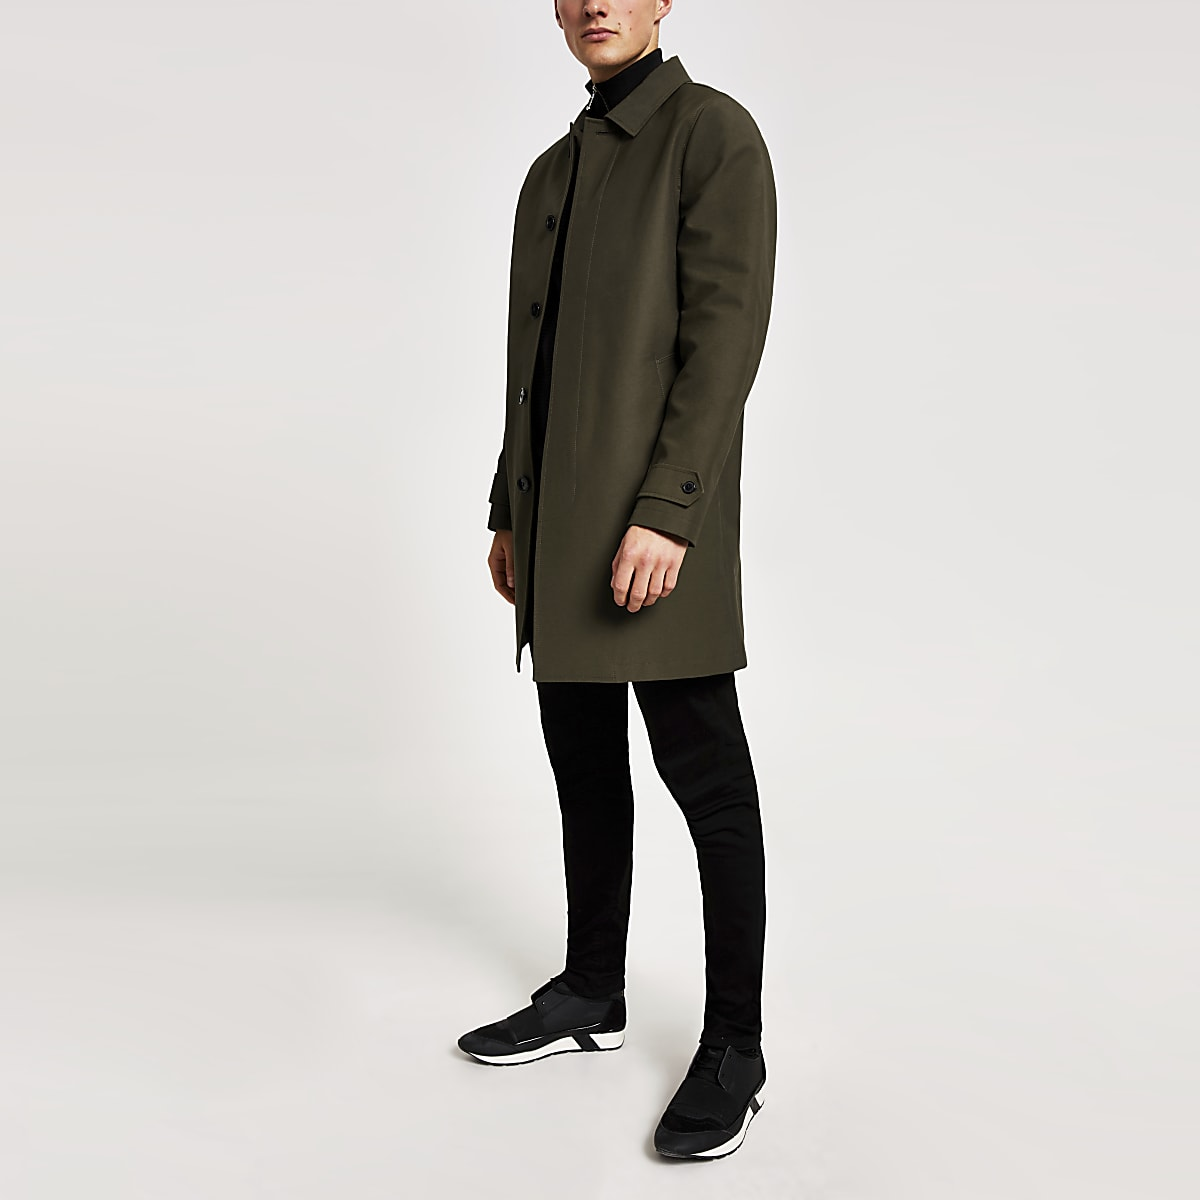 Cheap trench coat